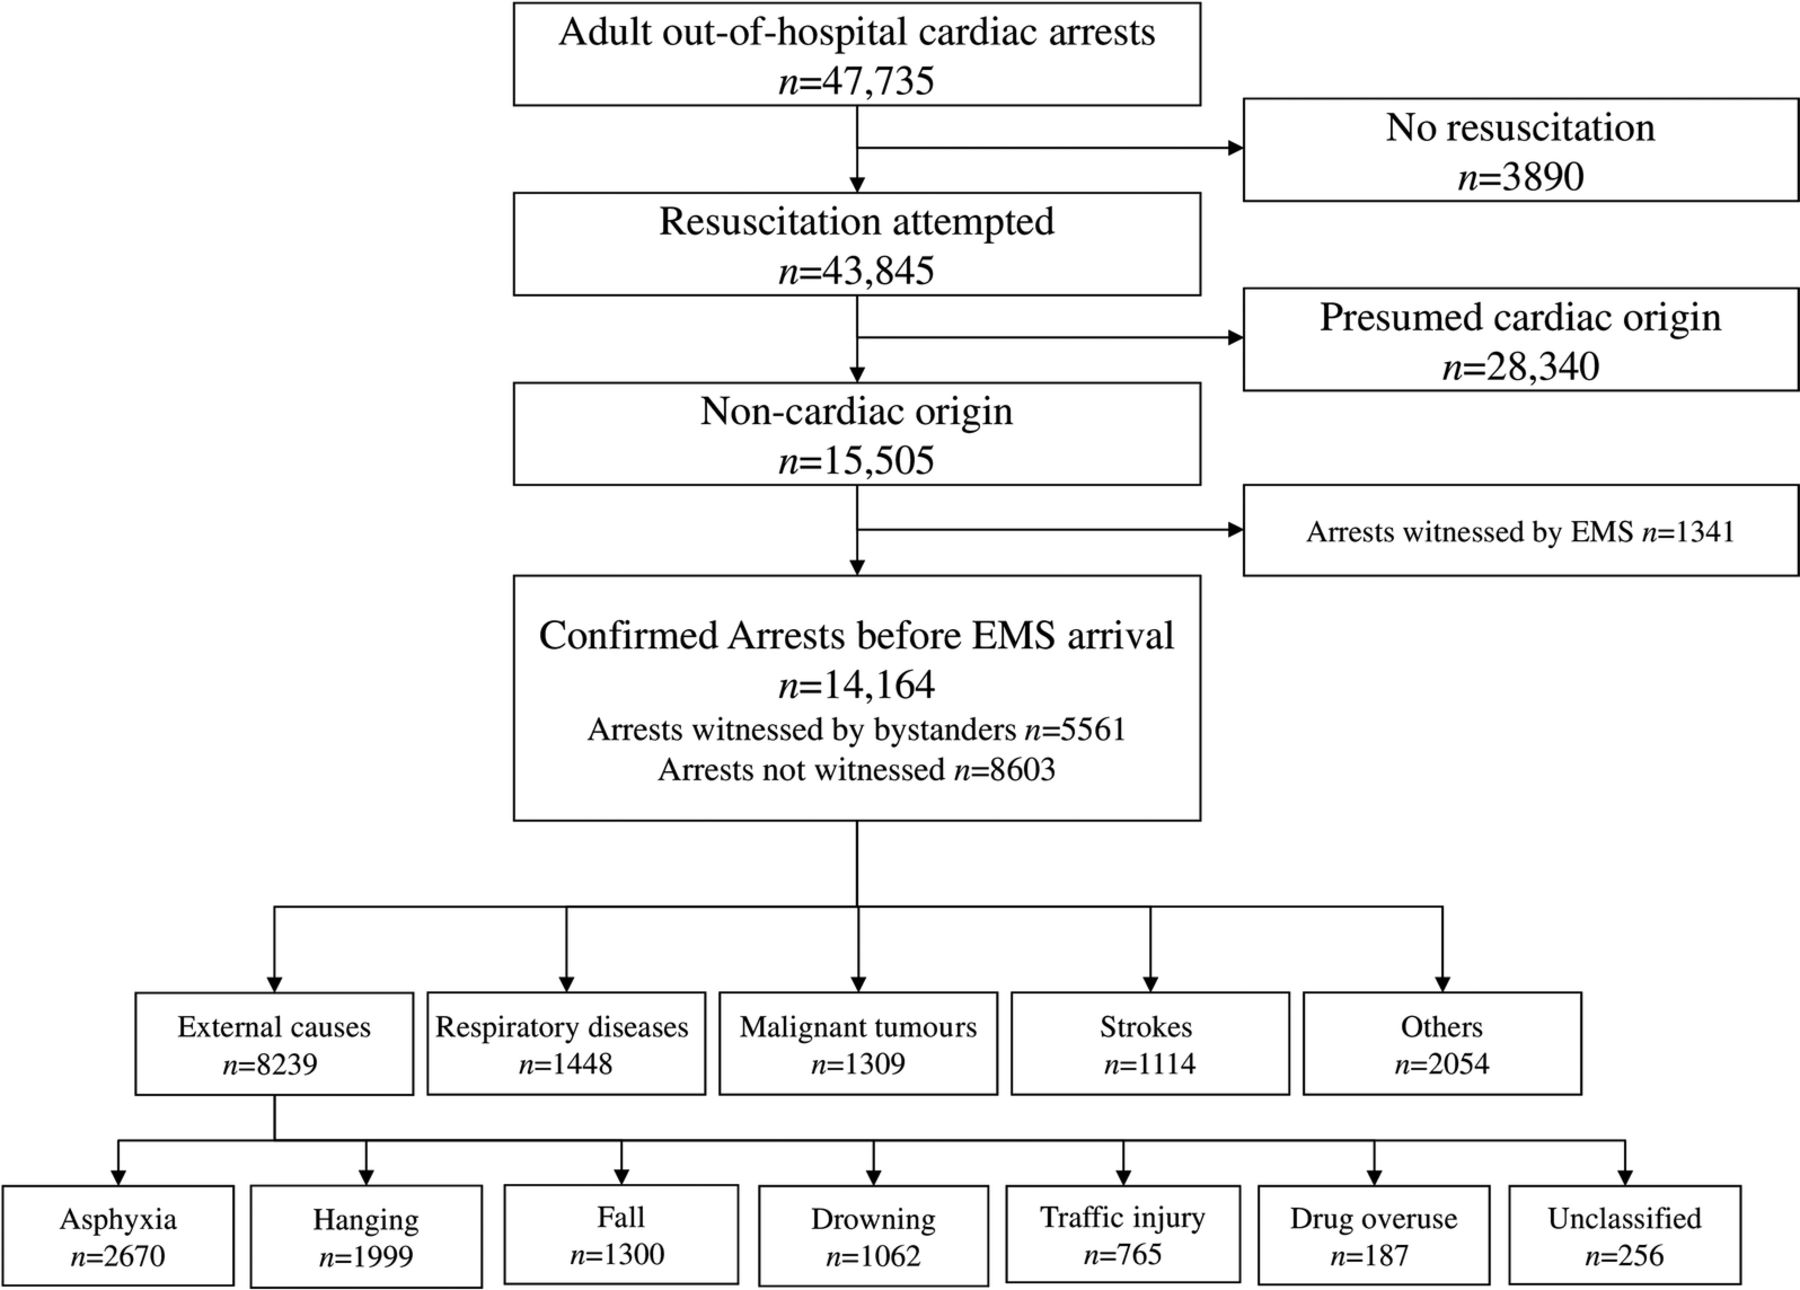 epidemiology and outcome of adult out-of-hospital cardiac arrest of